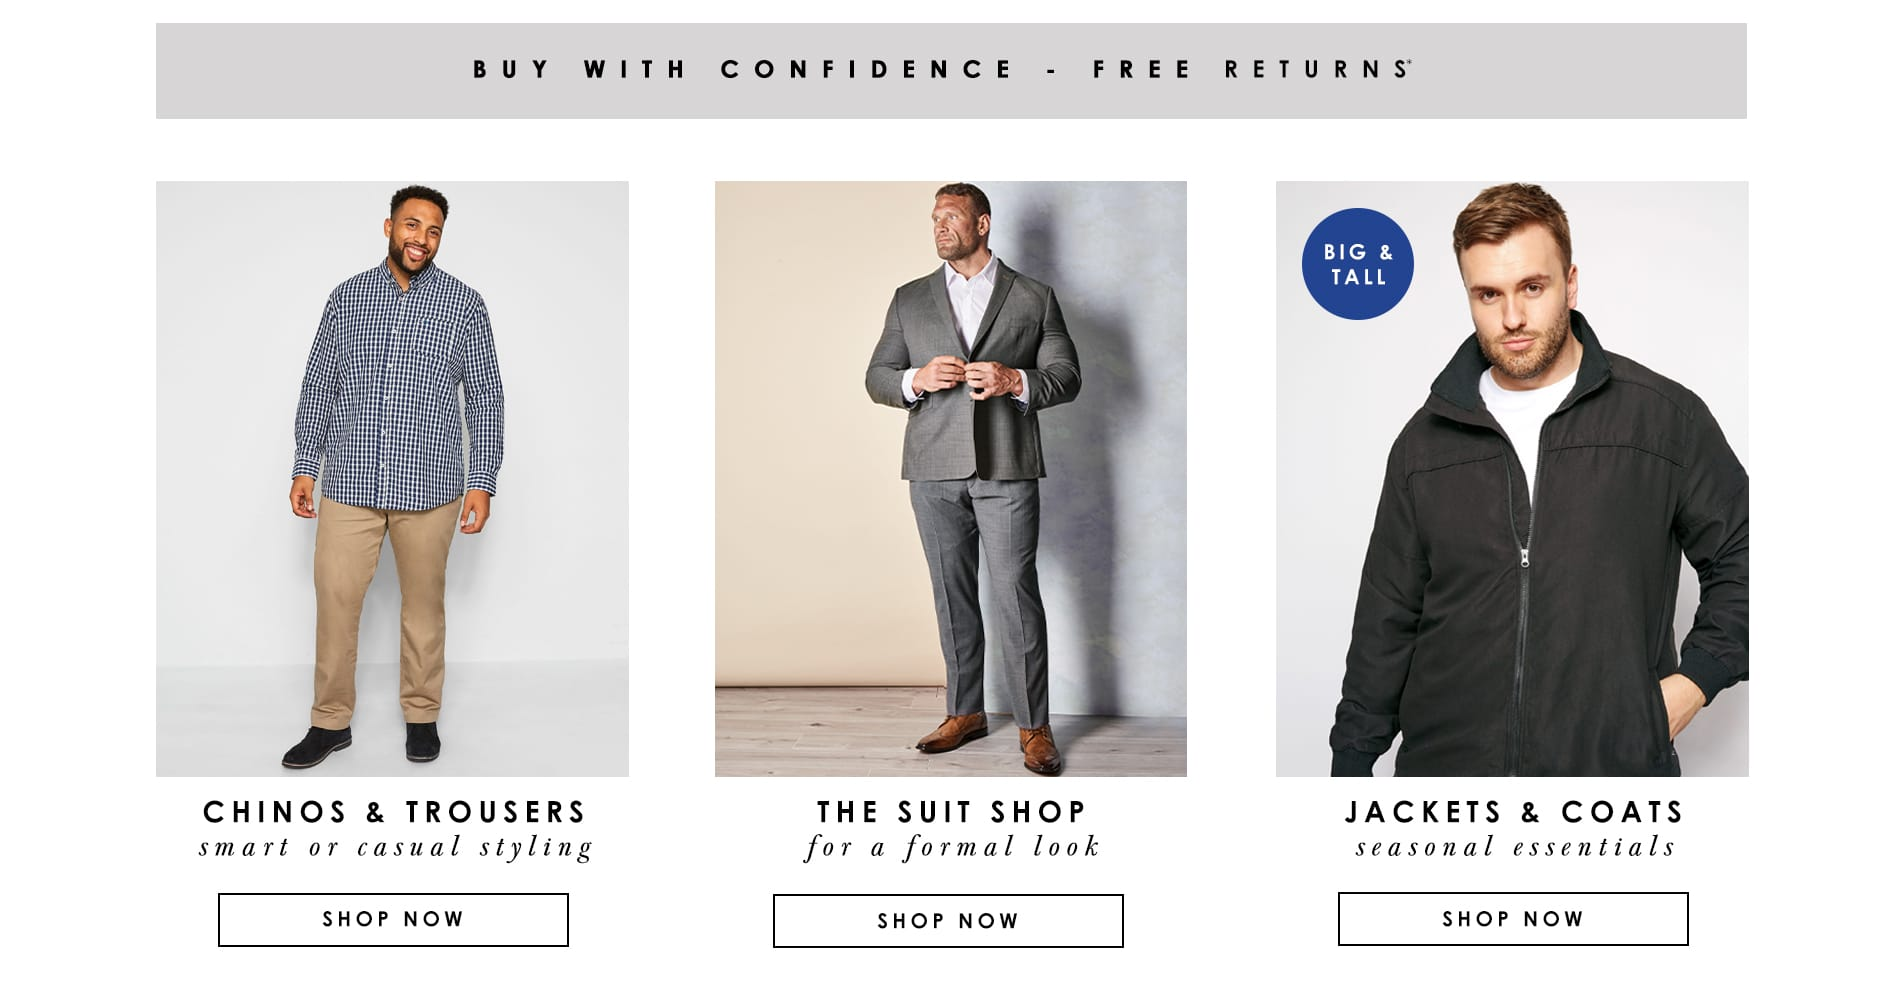 Chinos - Suits - Jackets